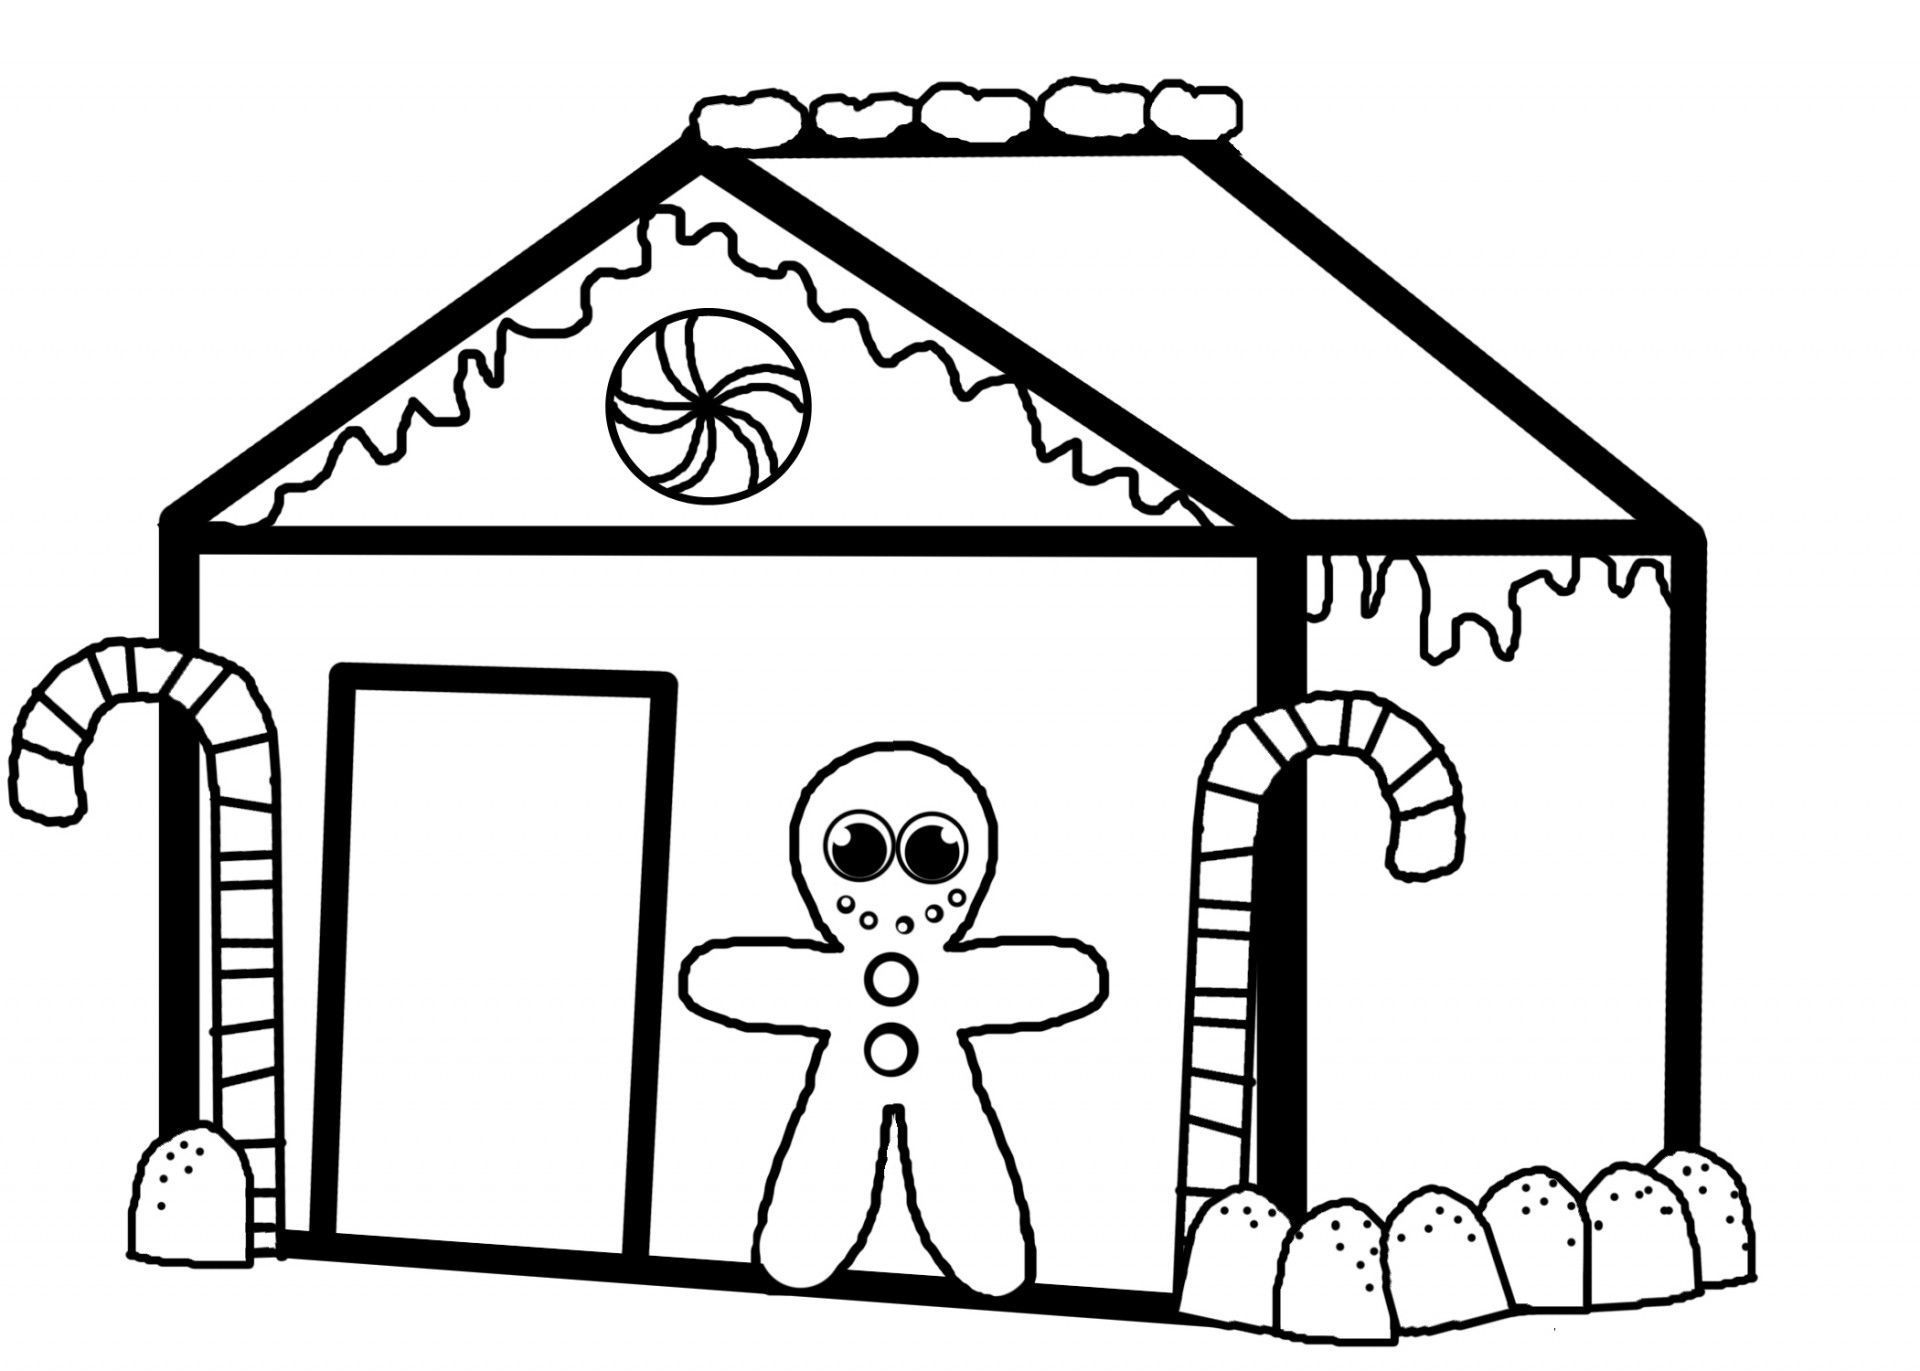 coloring pages of house free printable house coloring pages for kids of house pages coloring